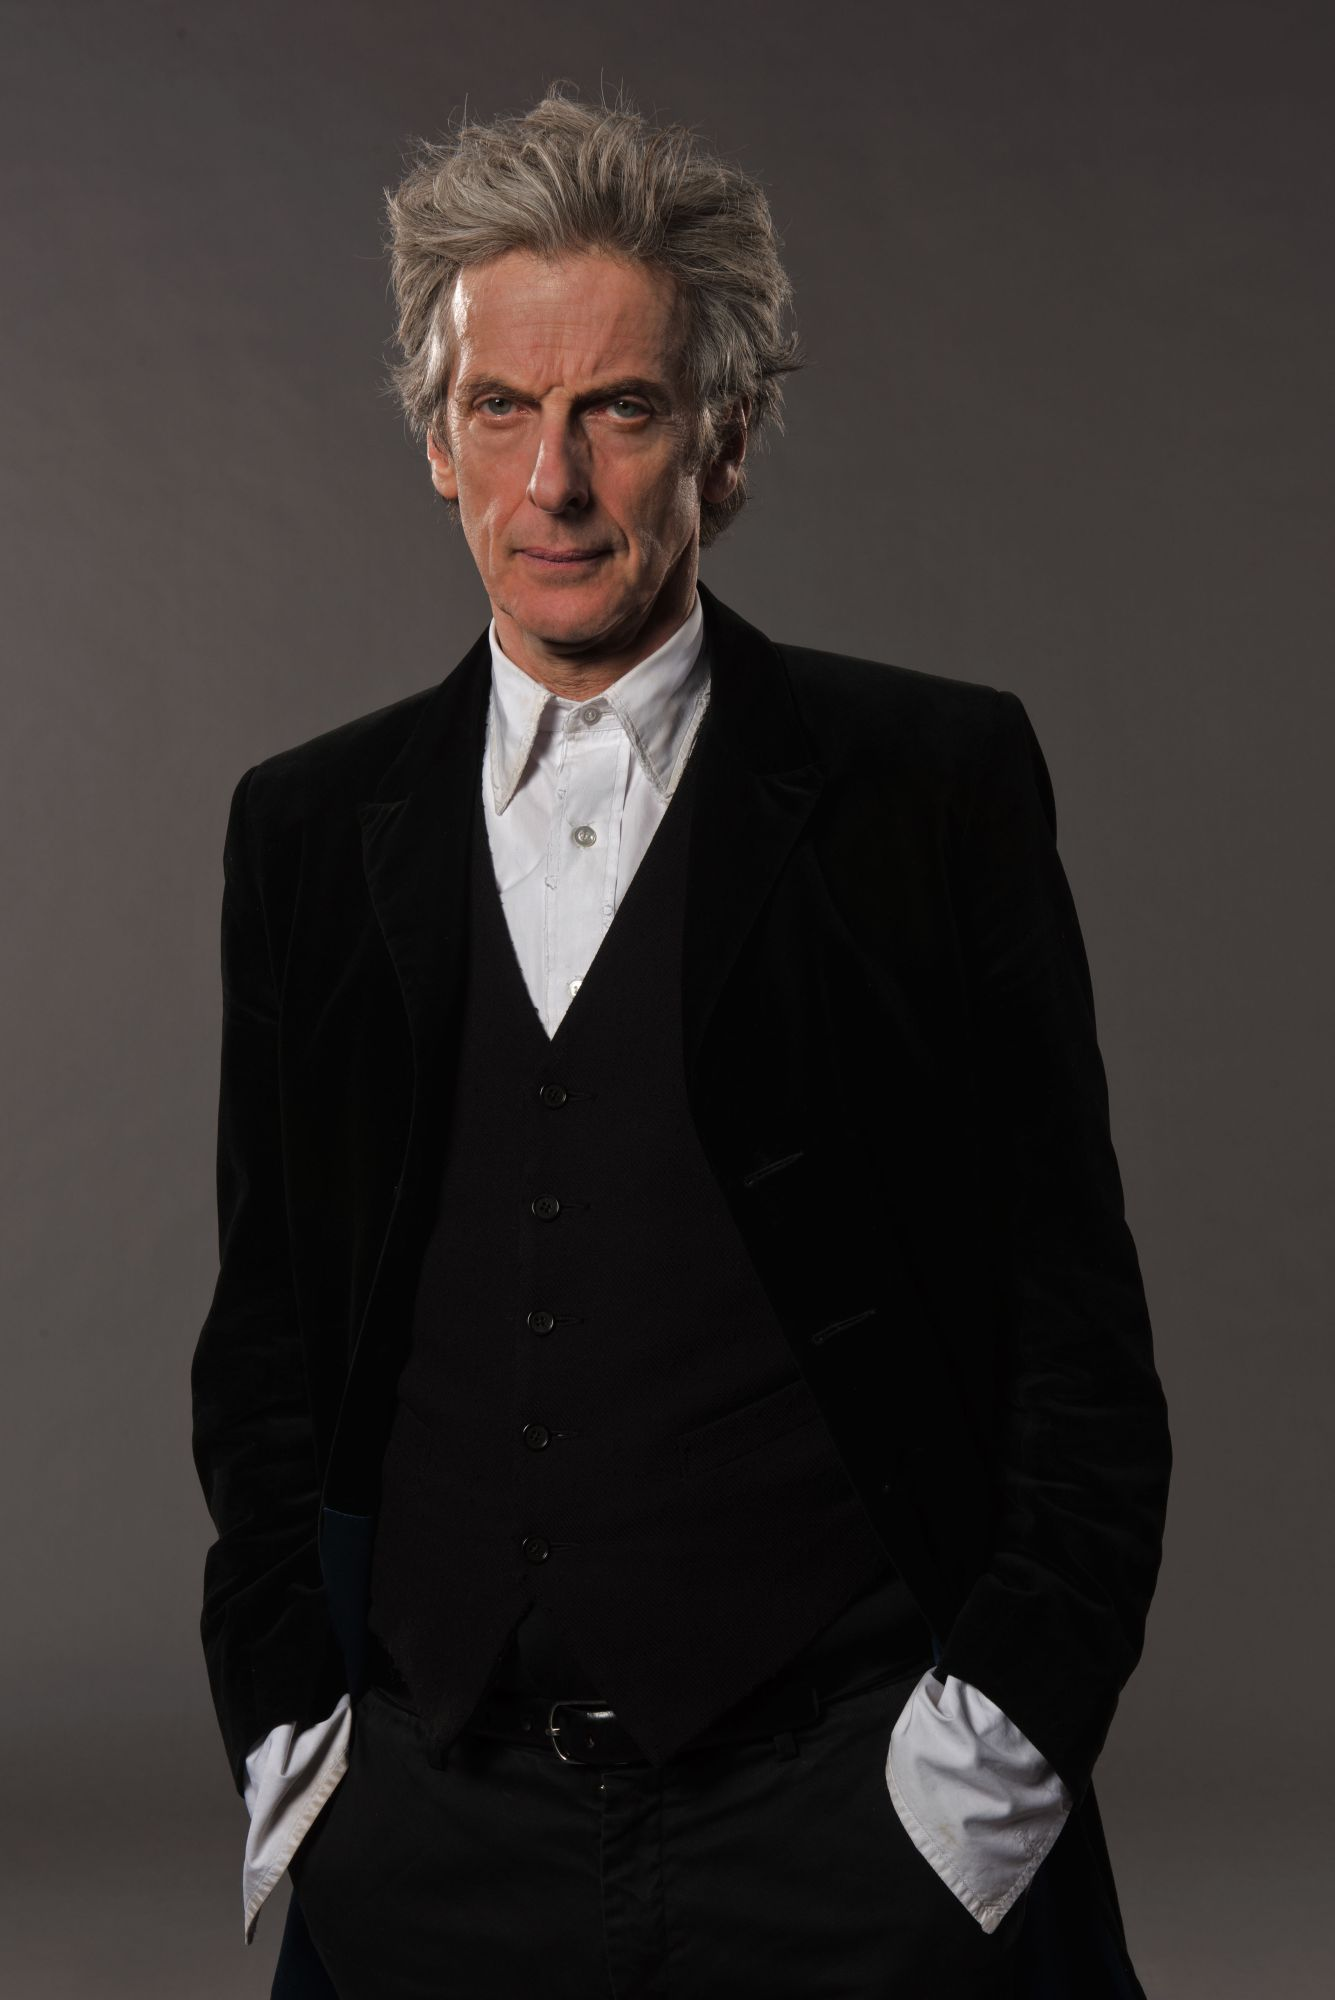 The Doctor, as played by Peter Capaldi (Credit: BBC/Des Willie)